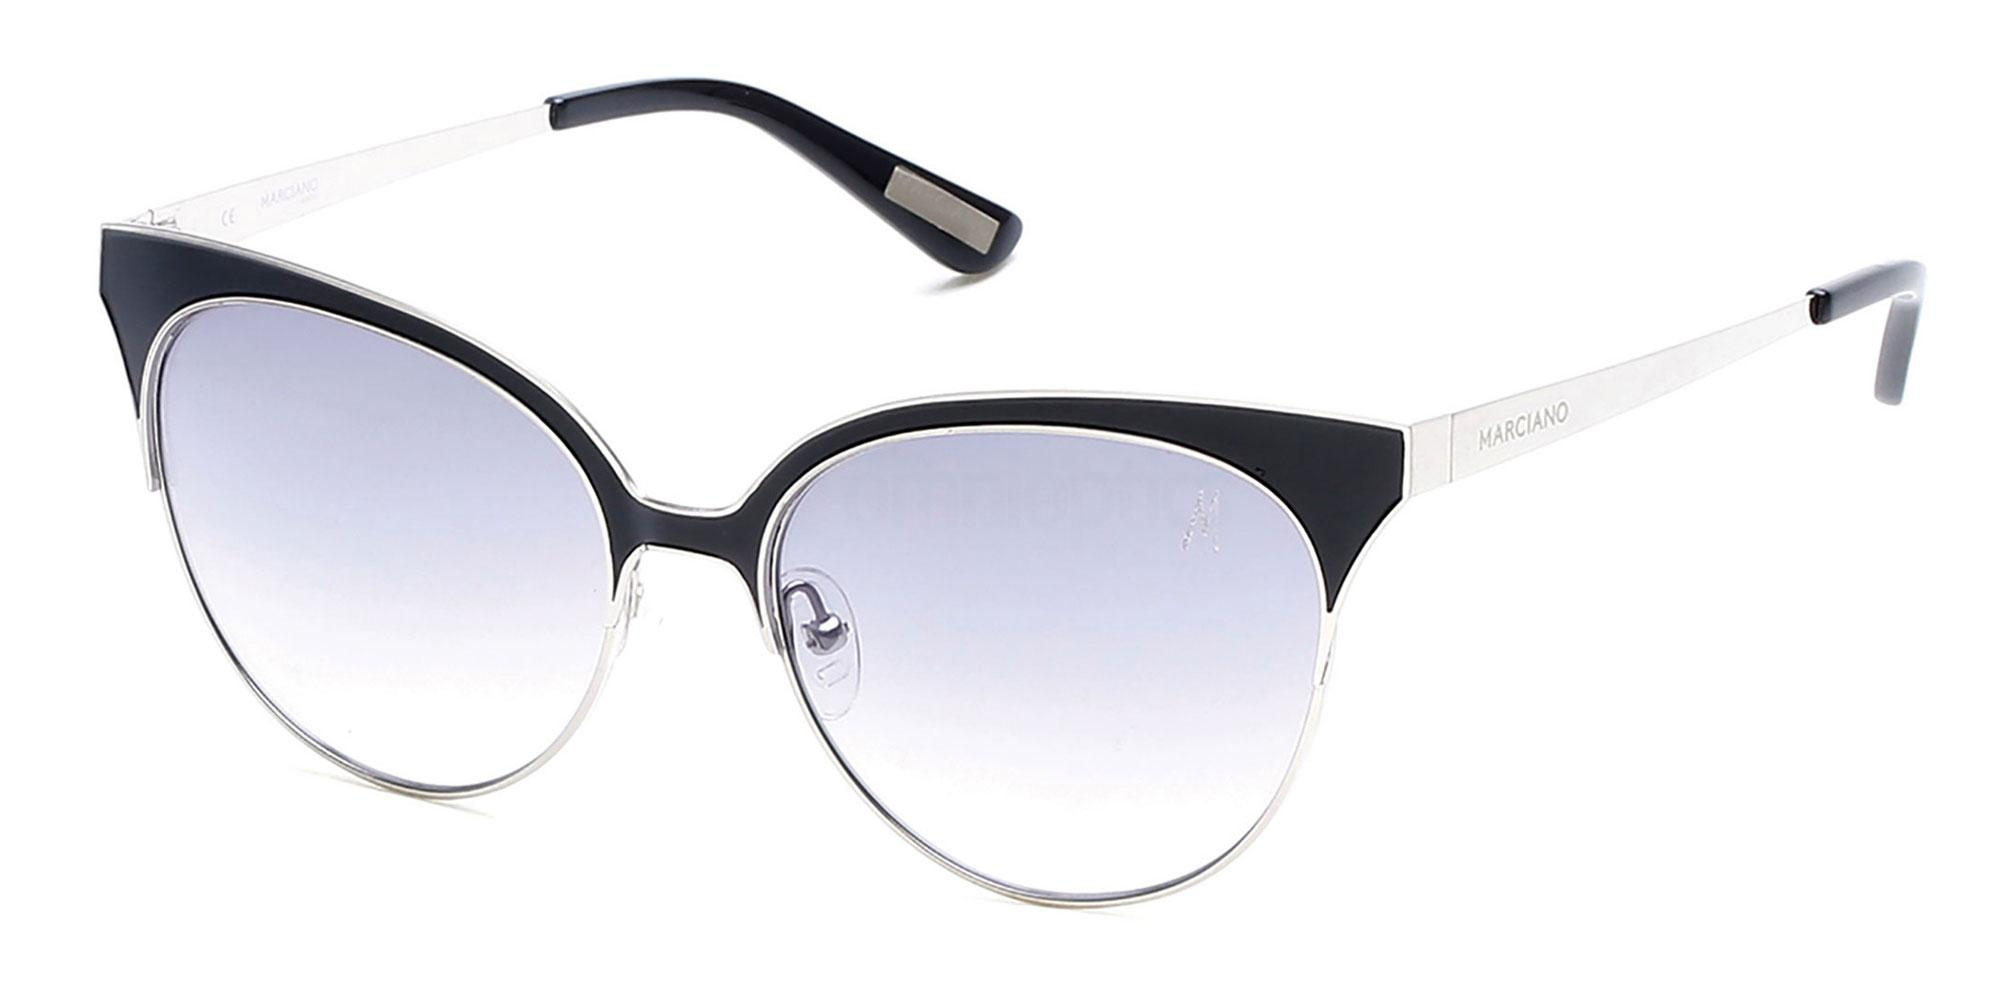 01B GM 0751 Sunglasses, Guess by Marciano